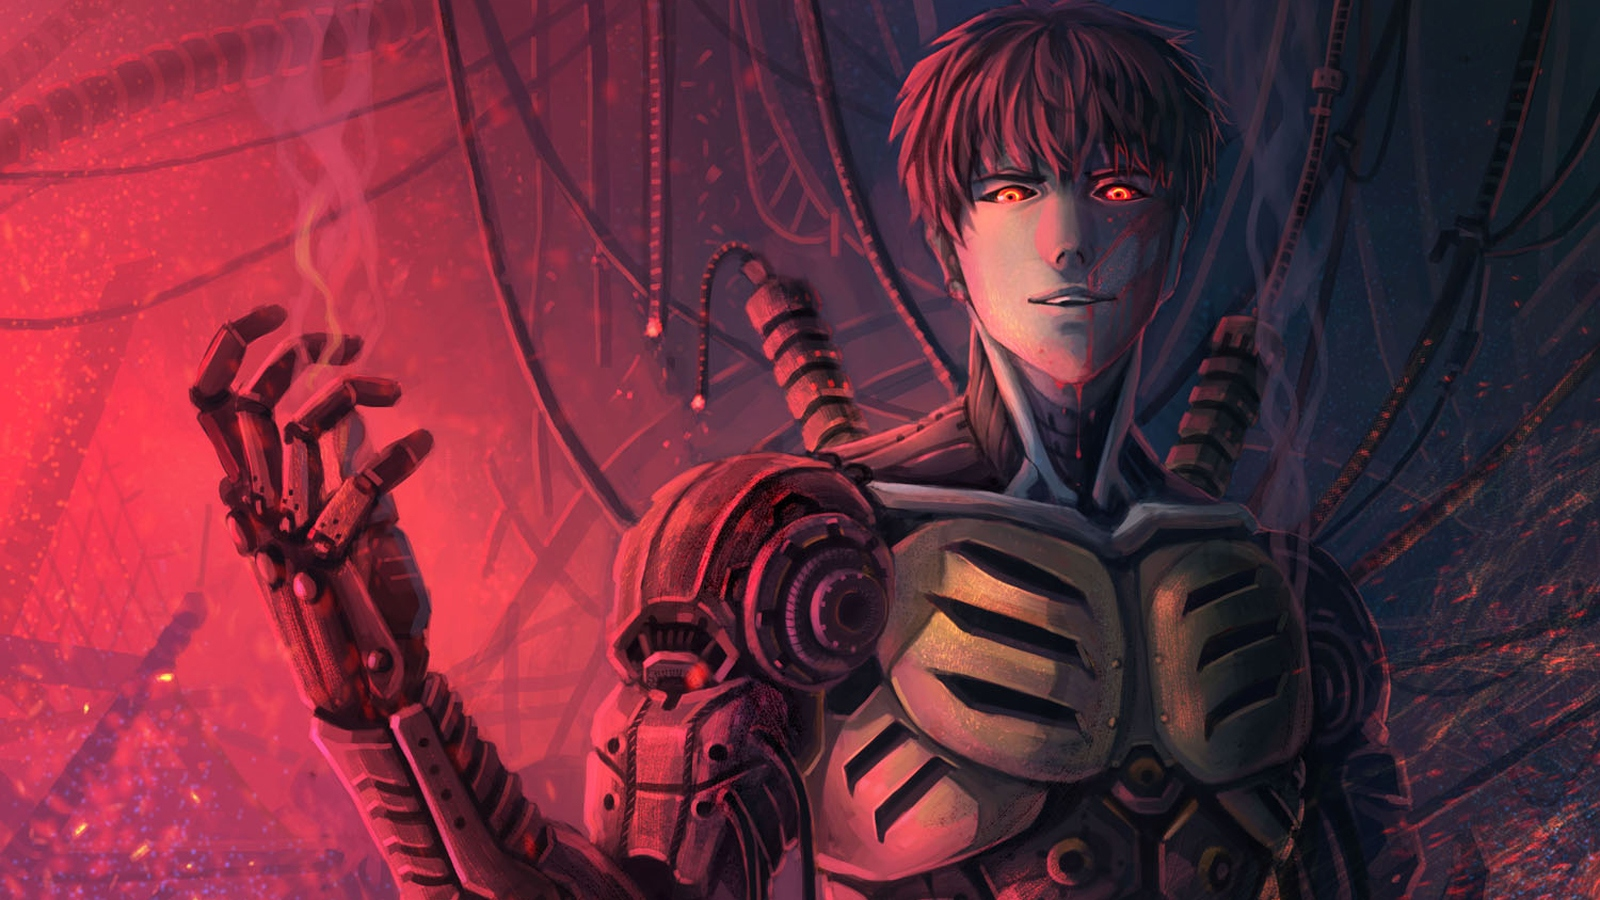 genos wallpaper and background 1600x900 id654233